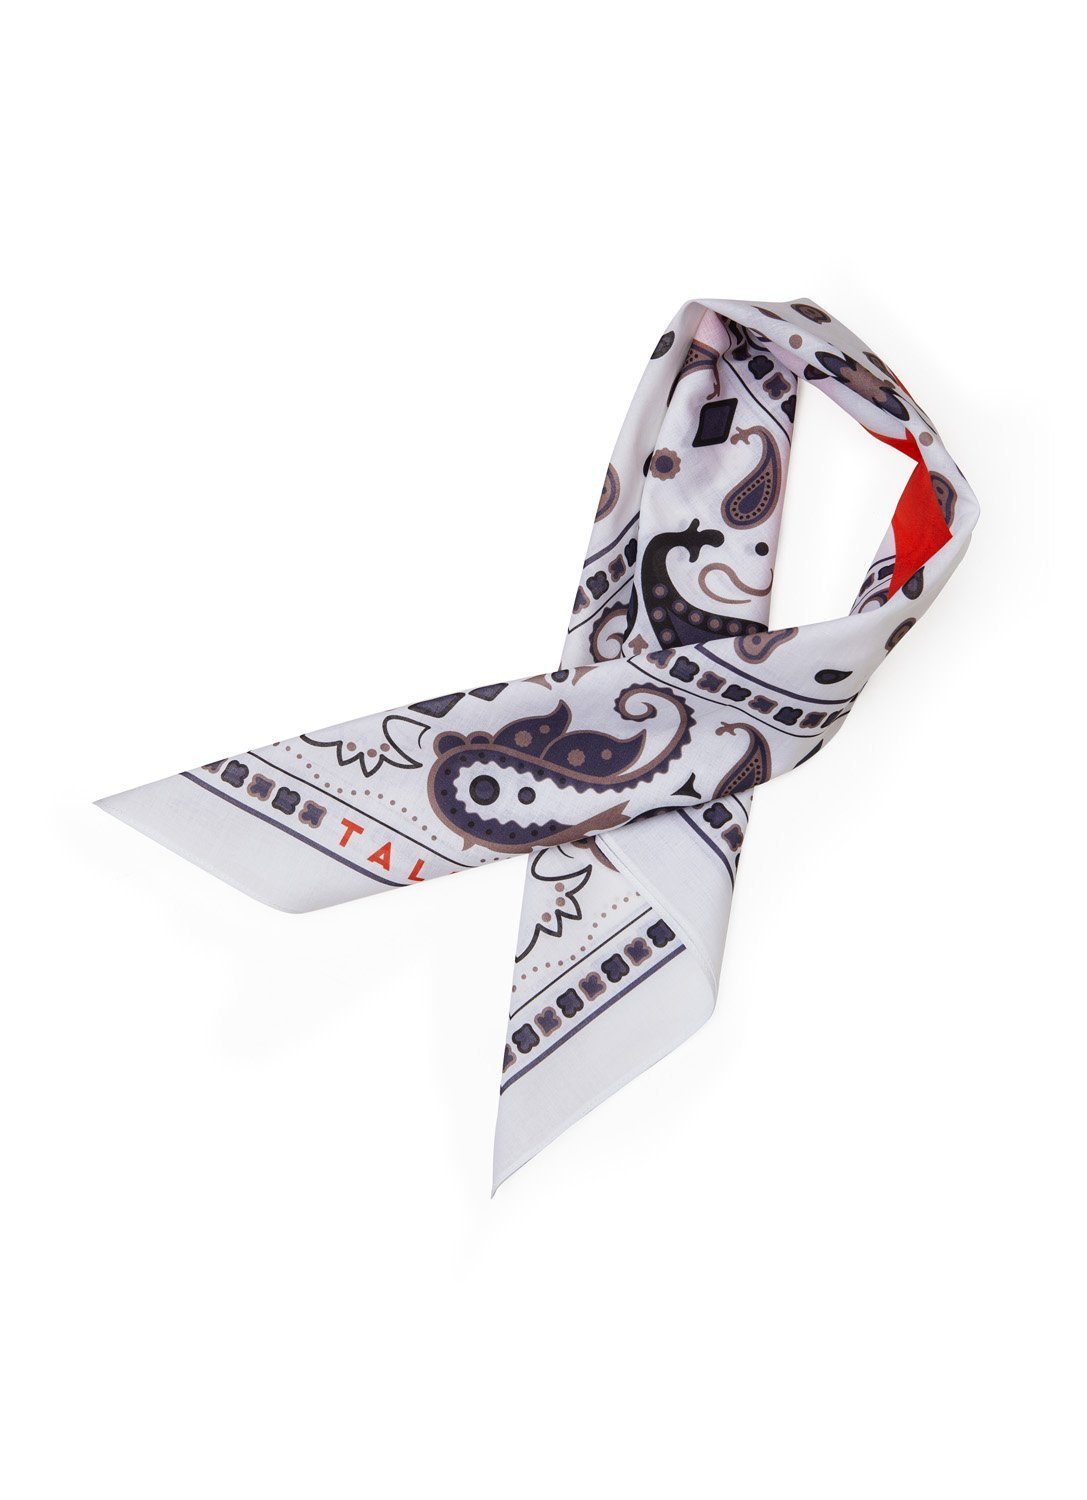 Paisley Black and Red Bandana - The Clothing LoungeTalented